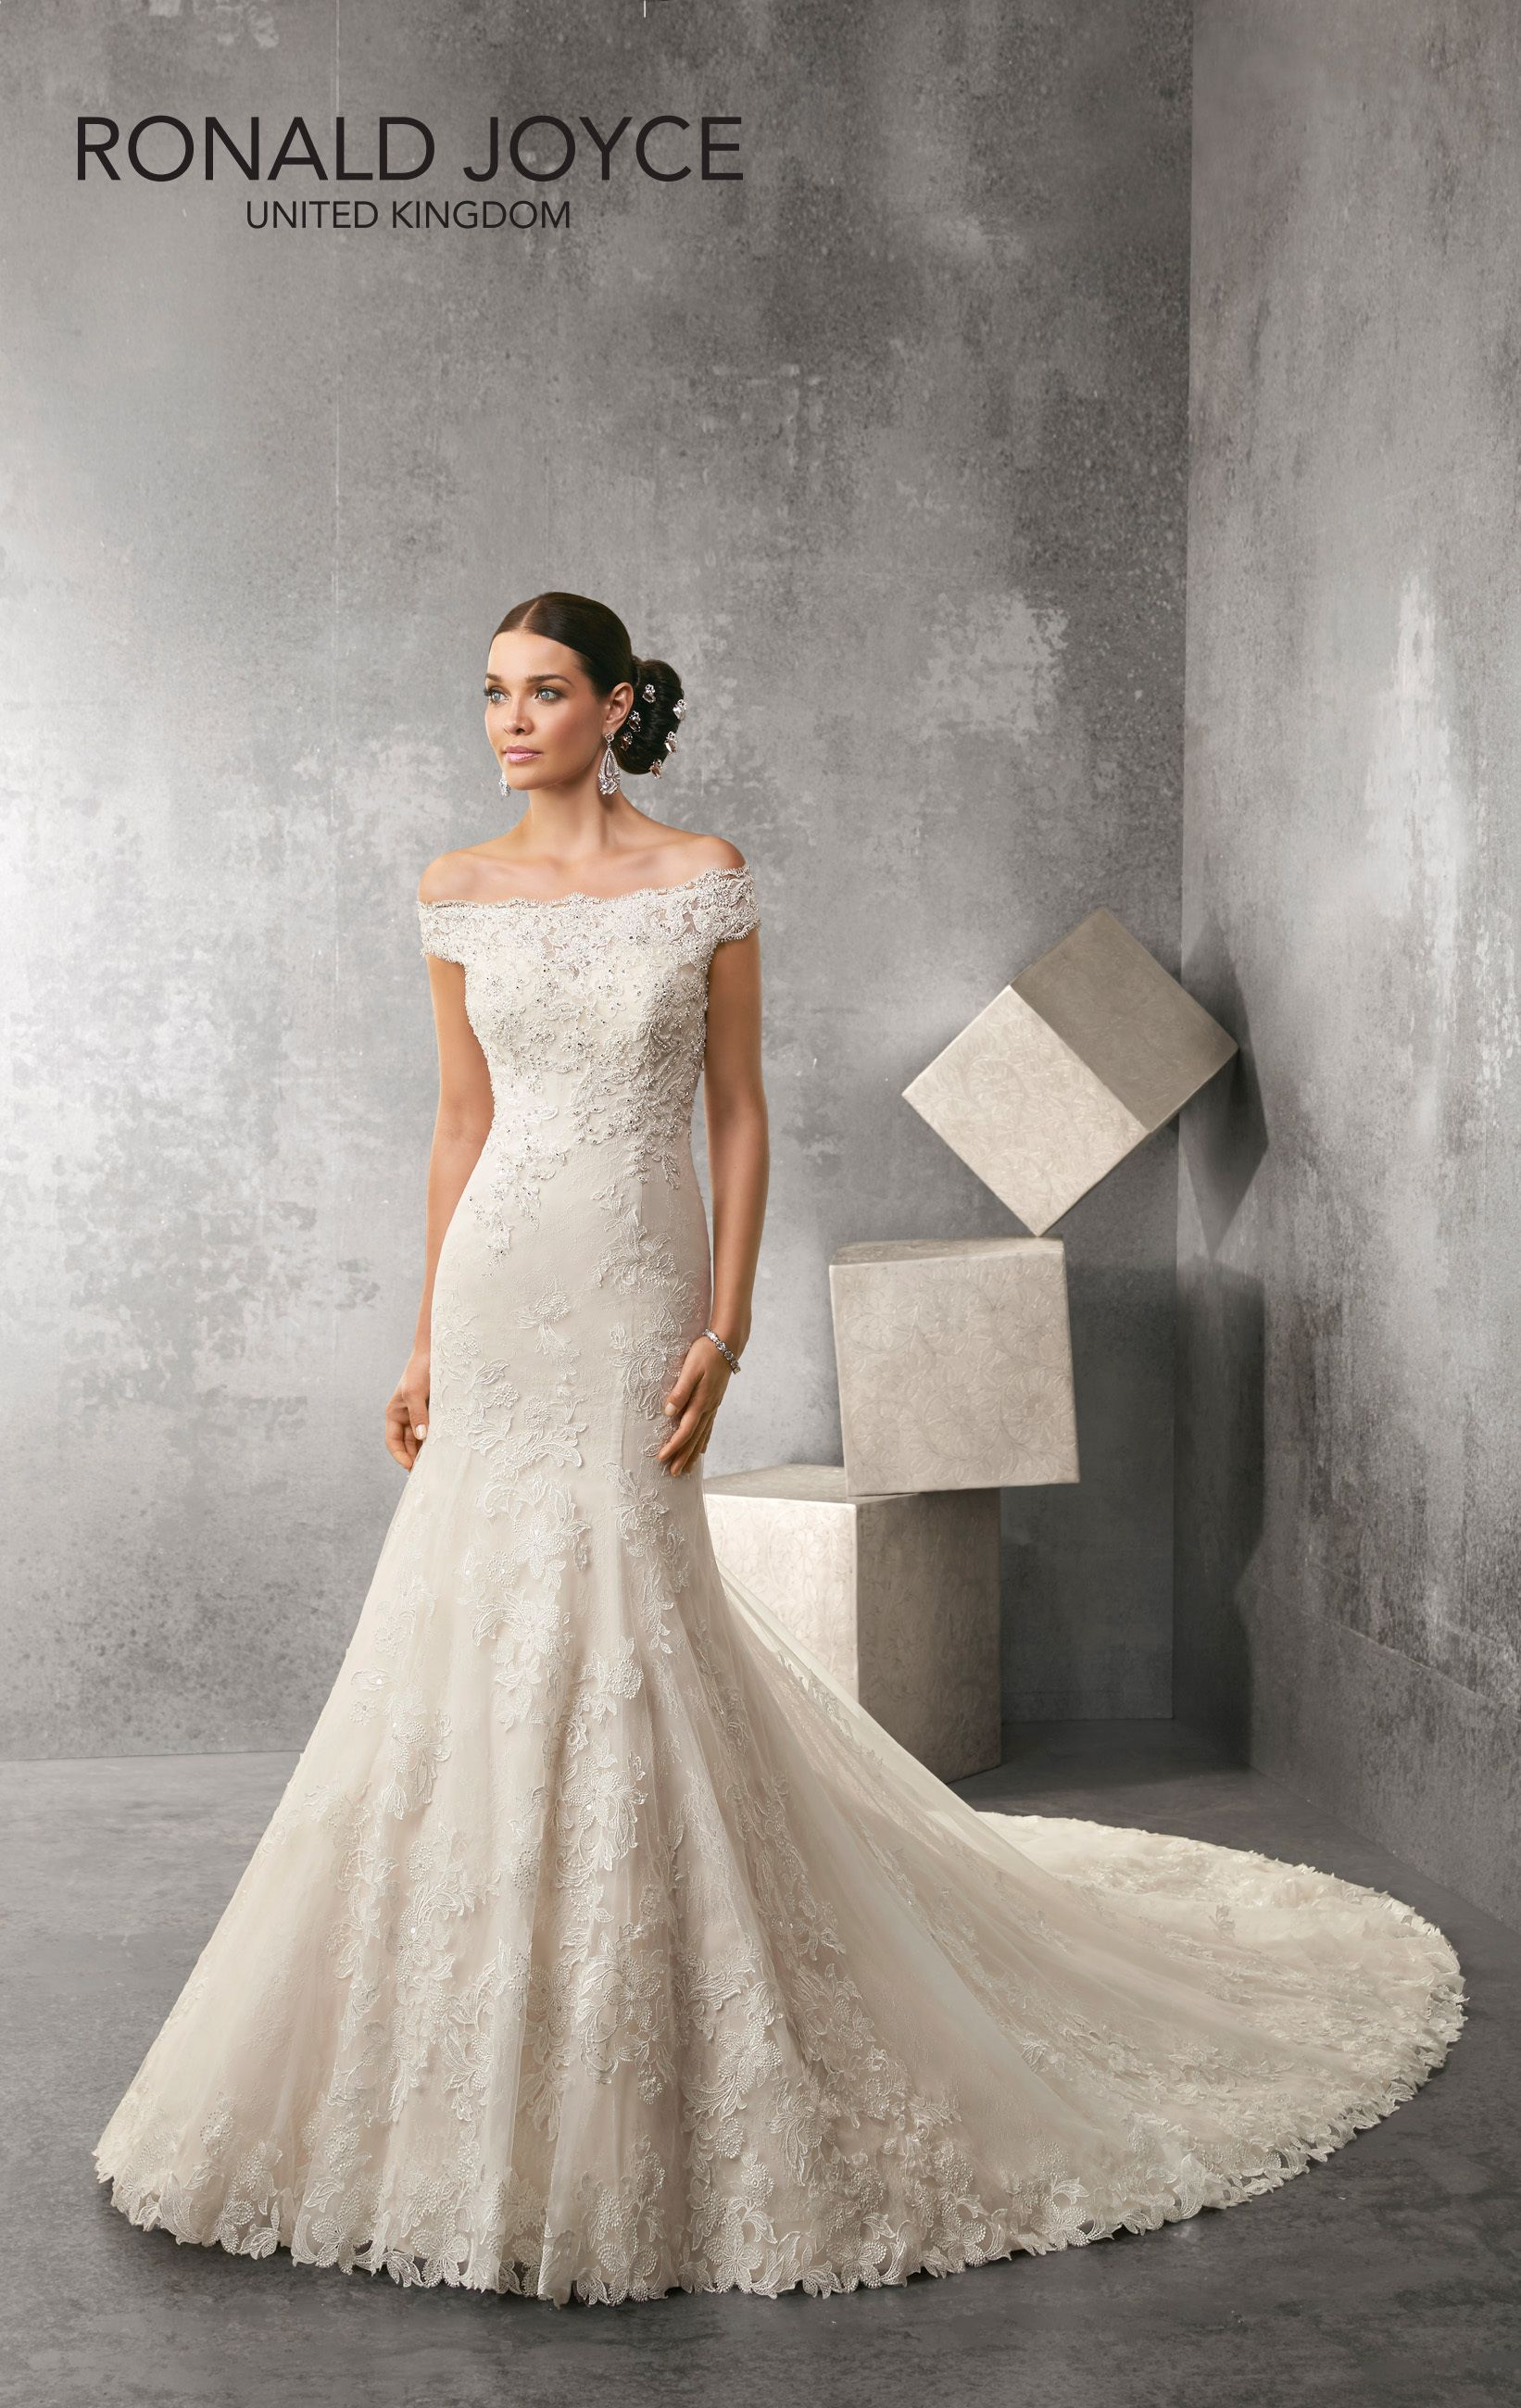 Newarrival Alert The Stunning Ainsley 69163 Ronaldjoyce Lace Bride Weddingdress Ivory Gown